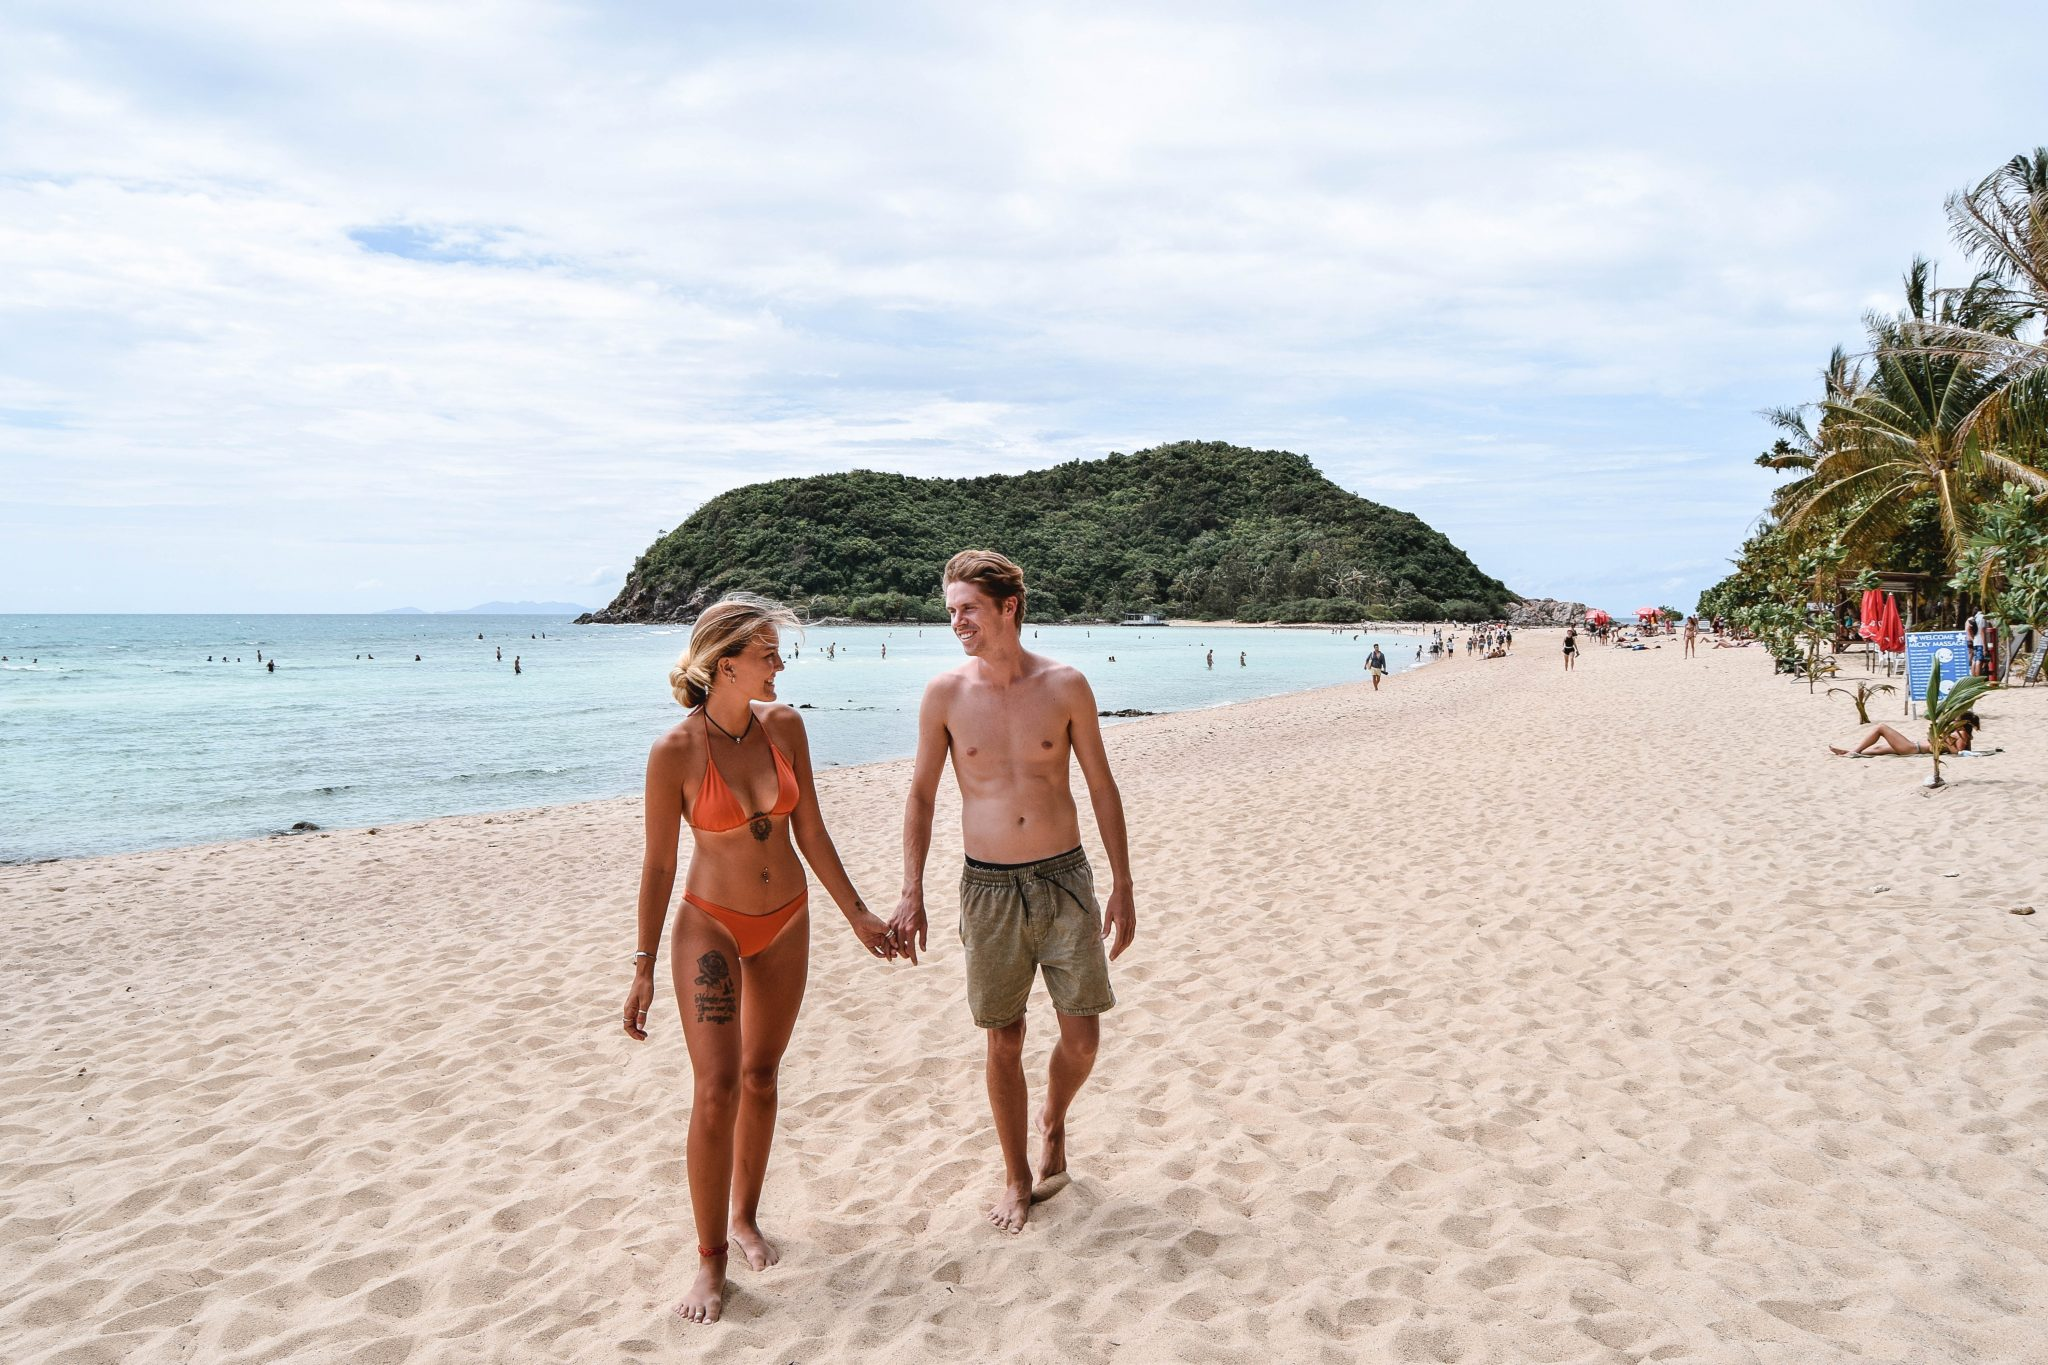 Wanderers & Warriors - Charlie & Lauren UK Travel Couple - Haad Mae Haad Beach Koh Phangan - Koh Ma Koh Phangan Best Beaches Koh Phangan Beaches